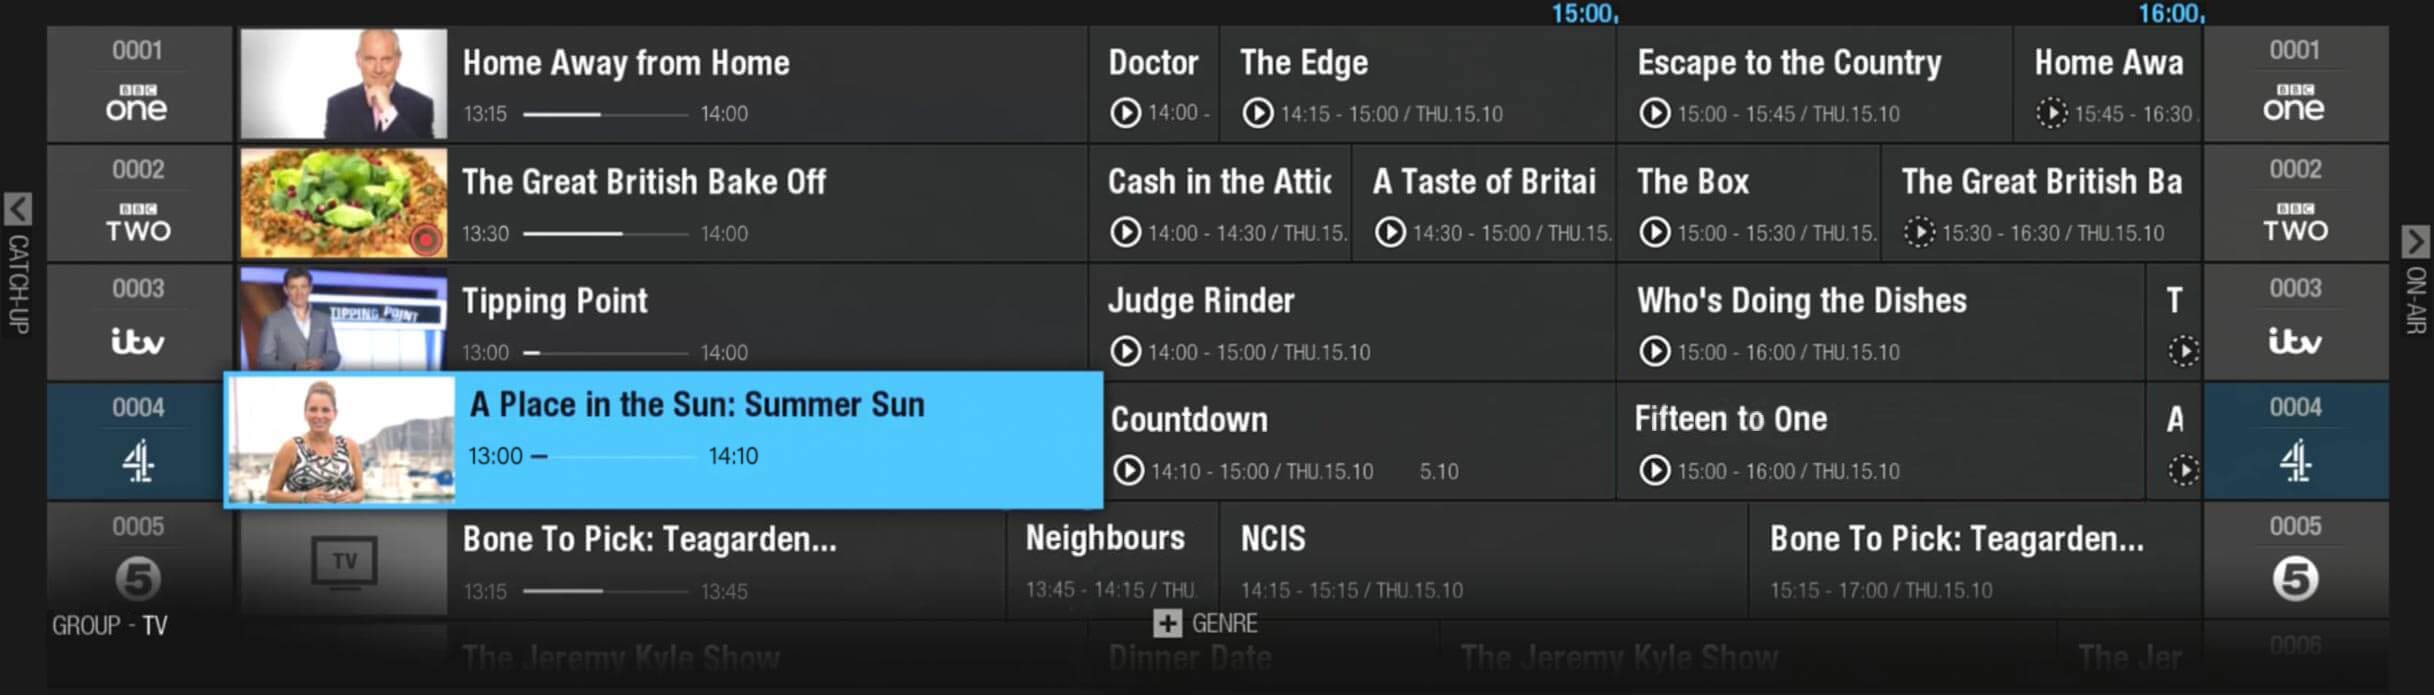 freeview tv guide for sydney